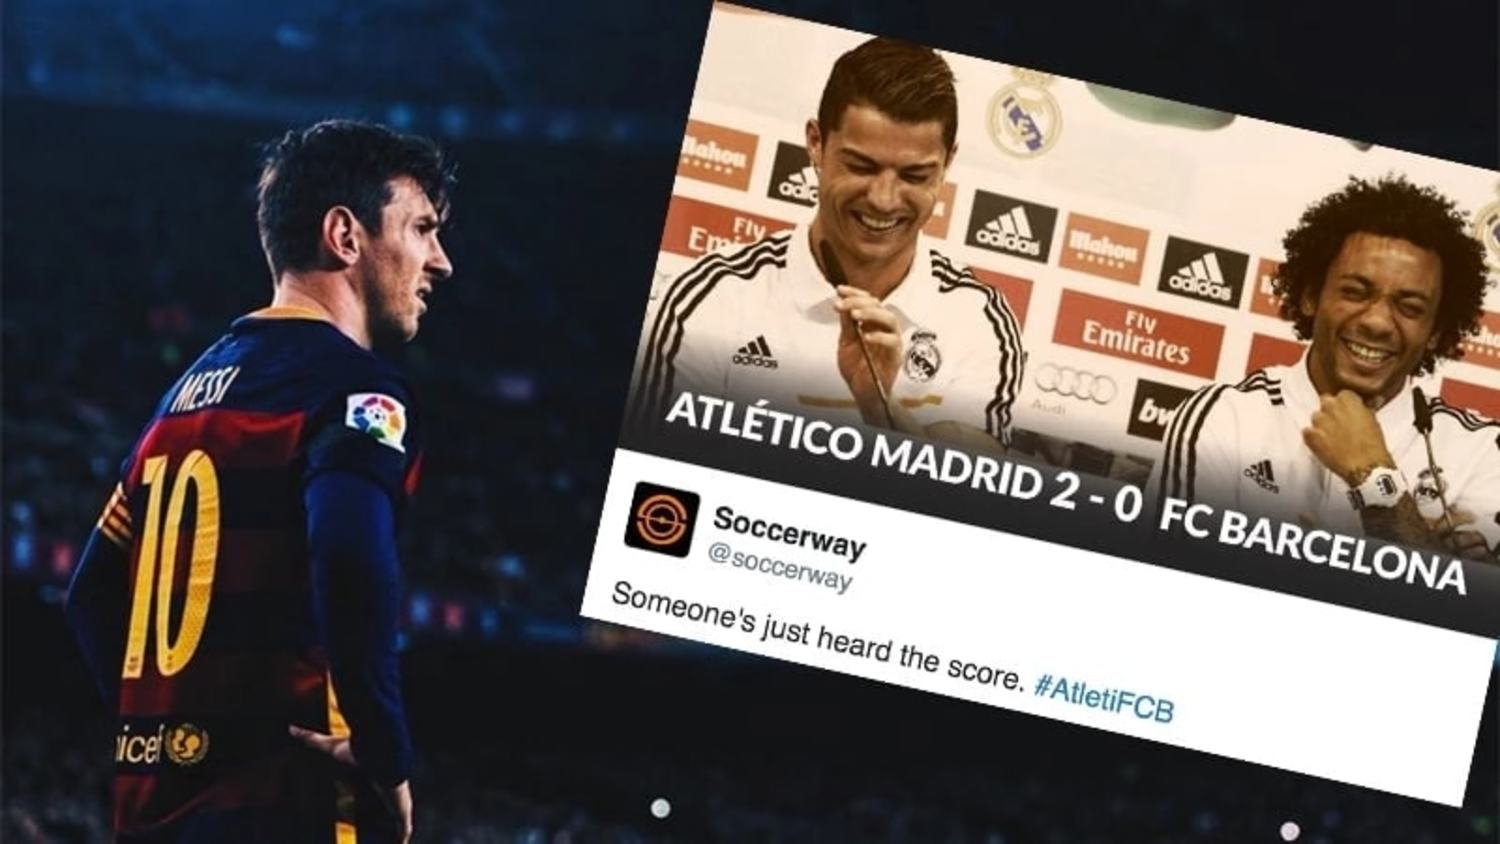 The Best Reactions to Barcelona's Champions League Exit